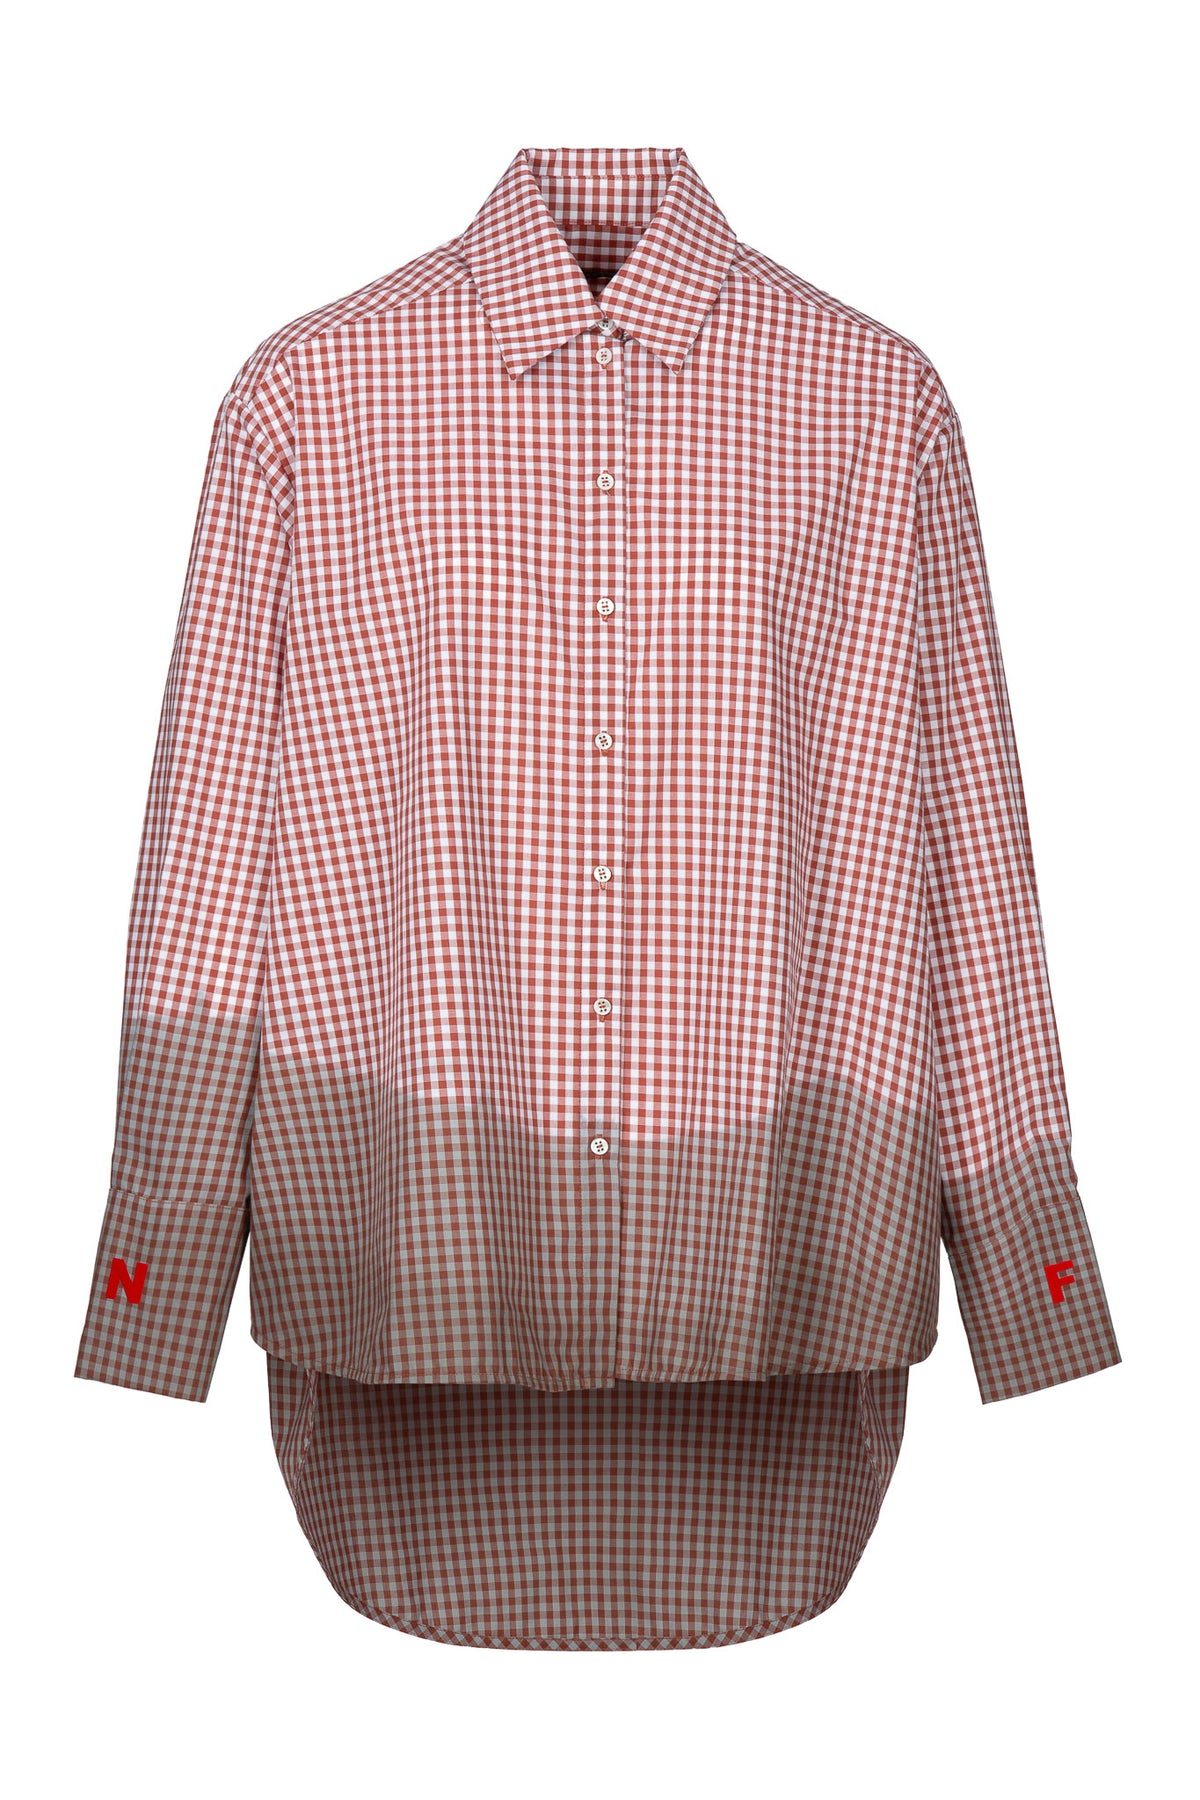 Dip | Shirt | Red Check